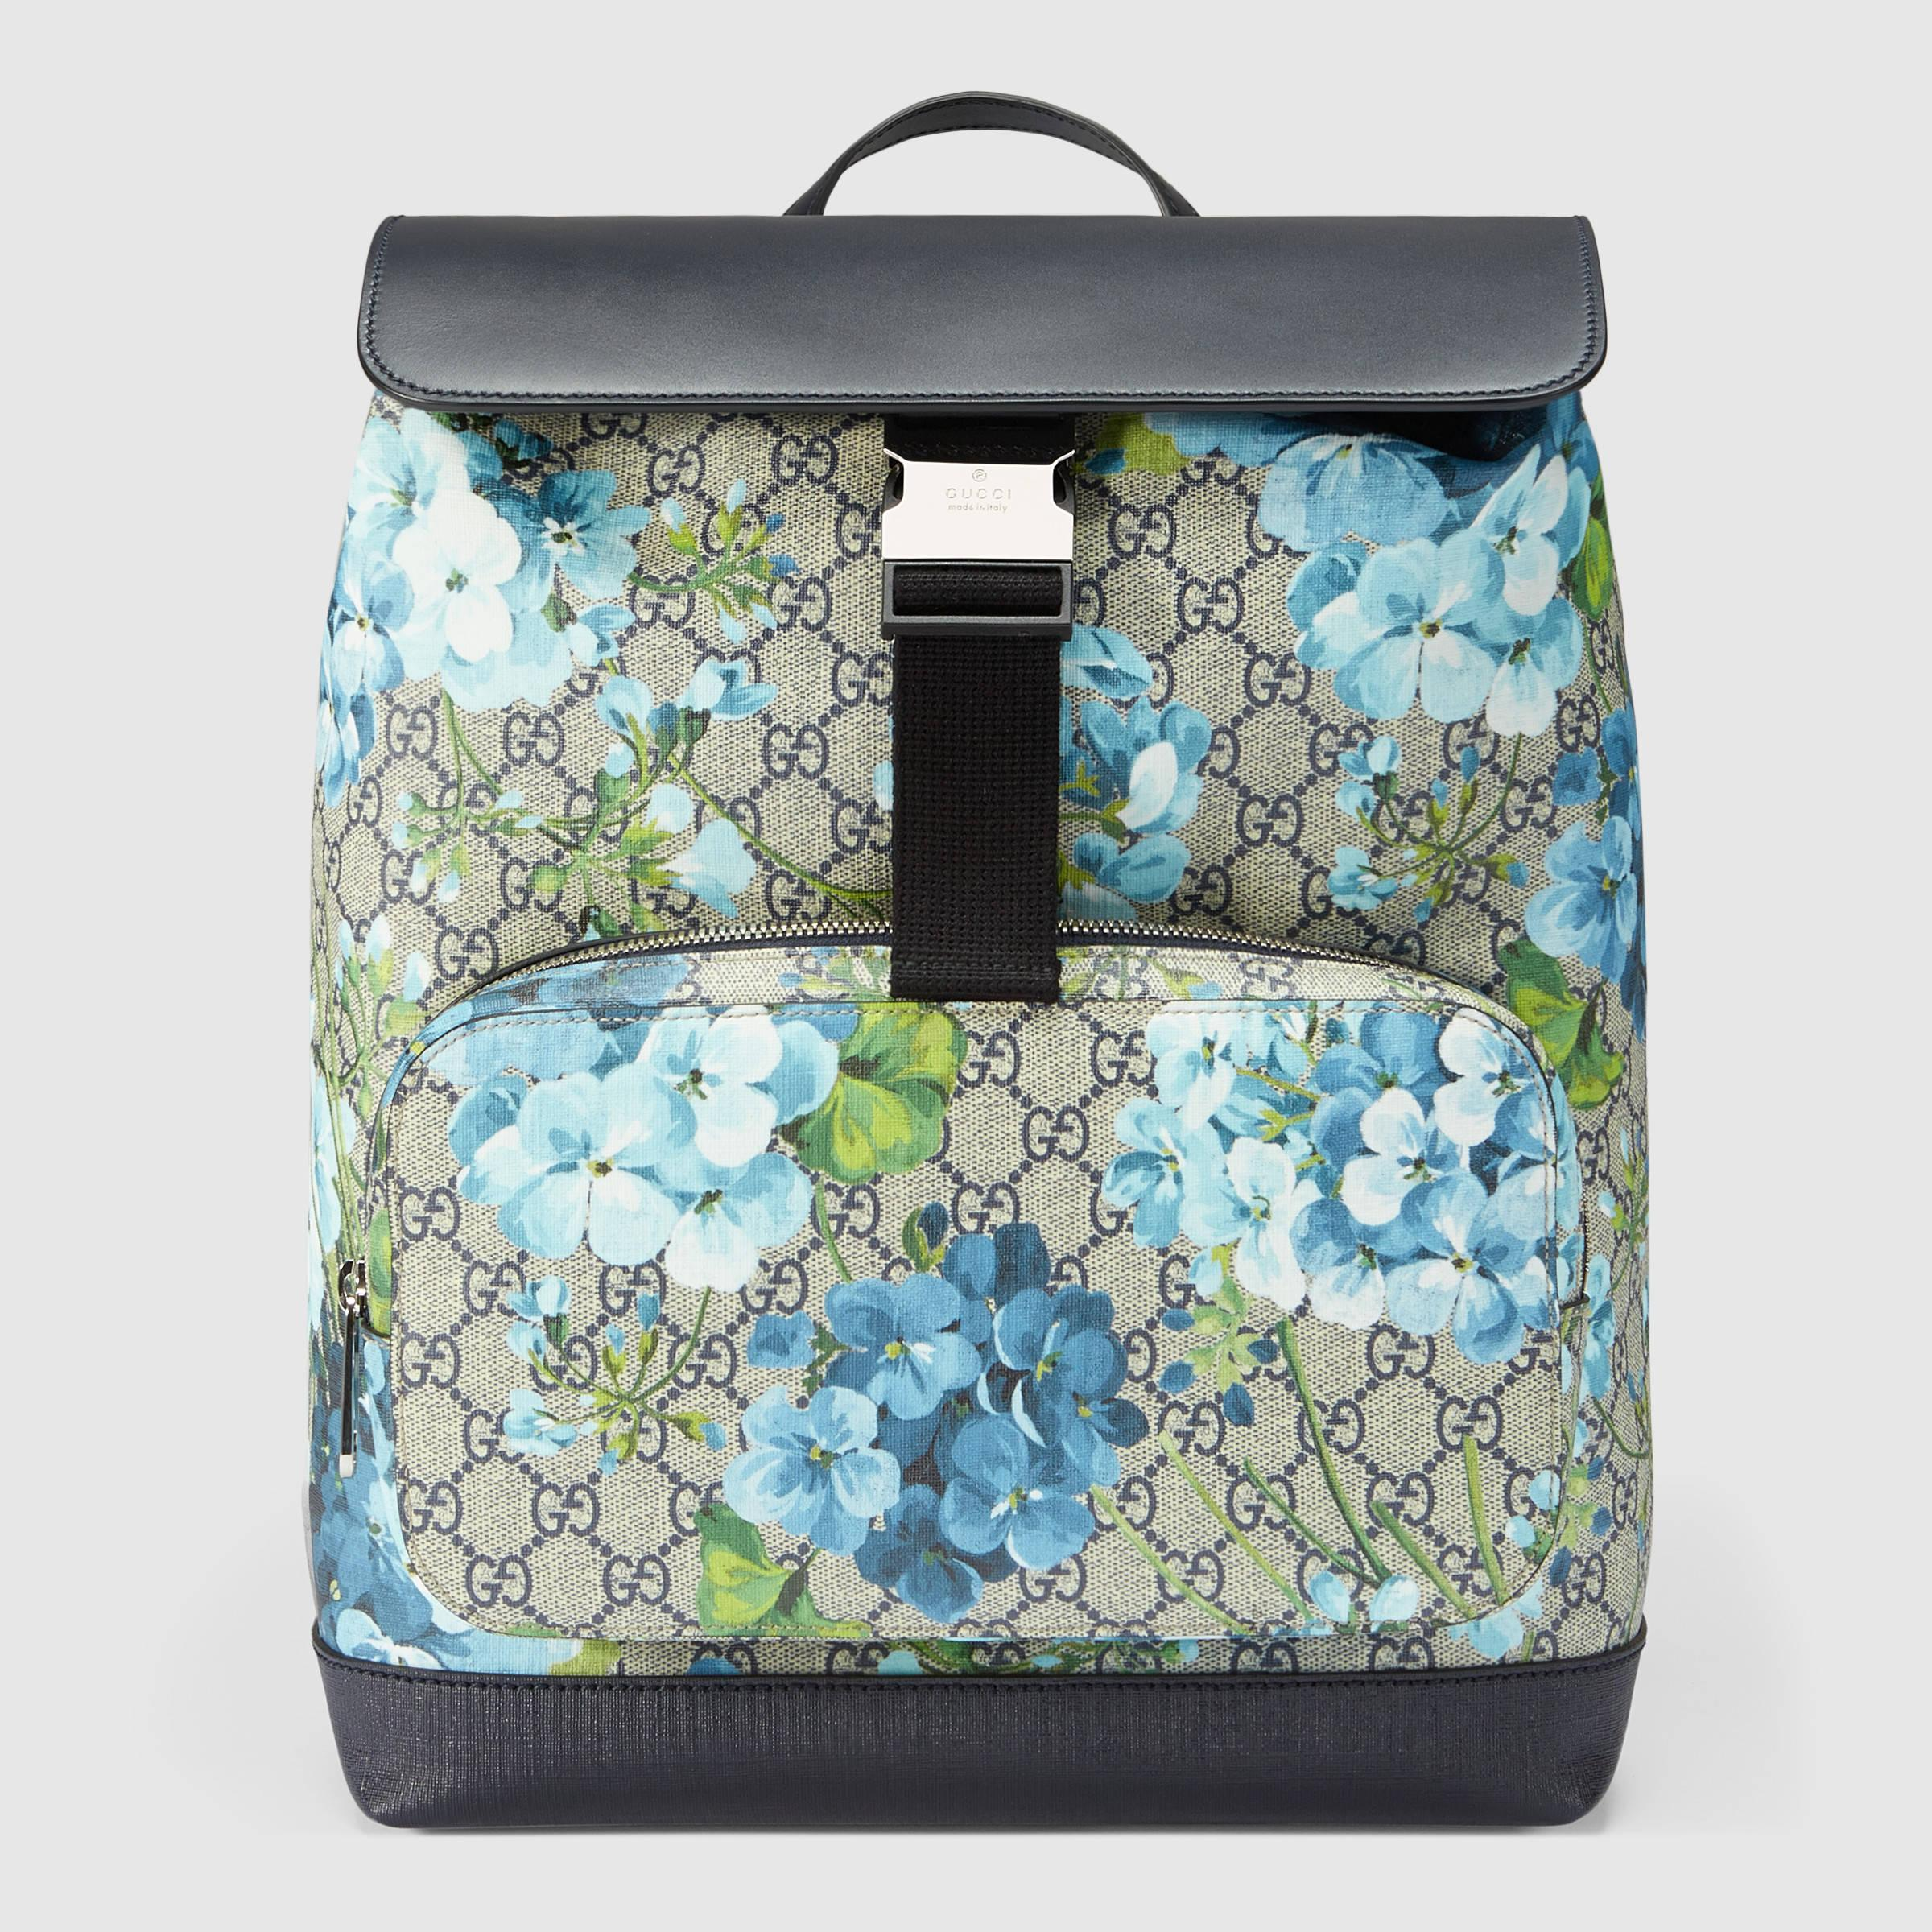 eba7b60be07cb4 Gucci Gg Blooms Backpack in Black - Lyst